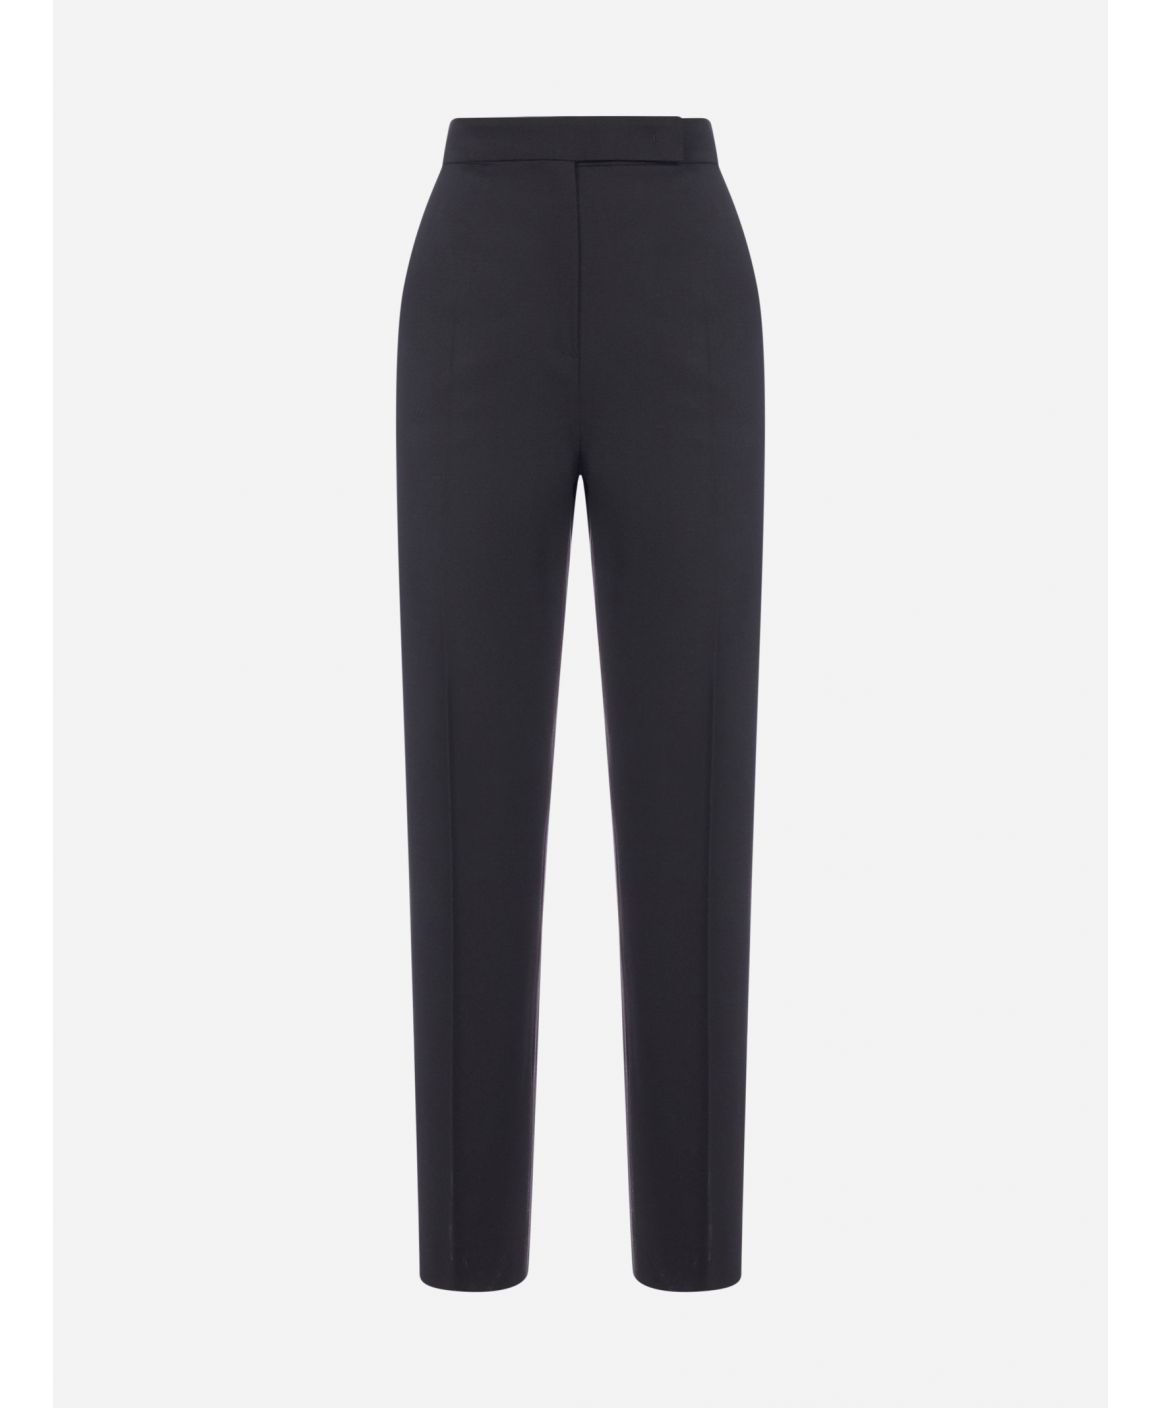 Oncia stretch wool trousers